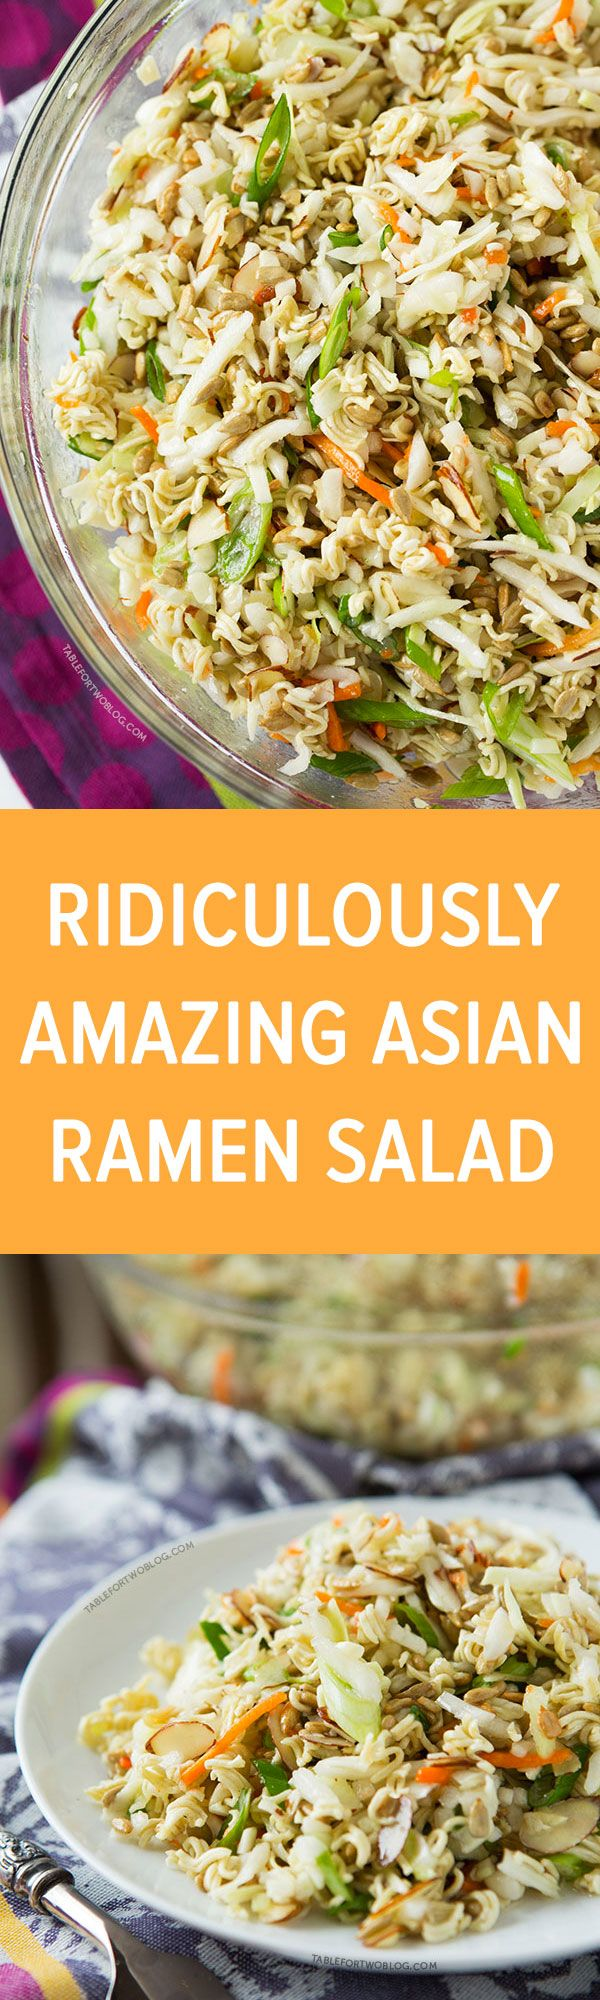 This ridiculously amazing Asian ramen salad will have you and your guests going back for thirds and fo